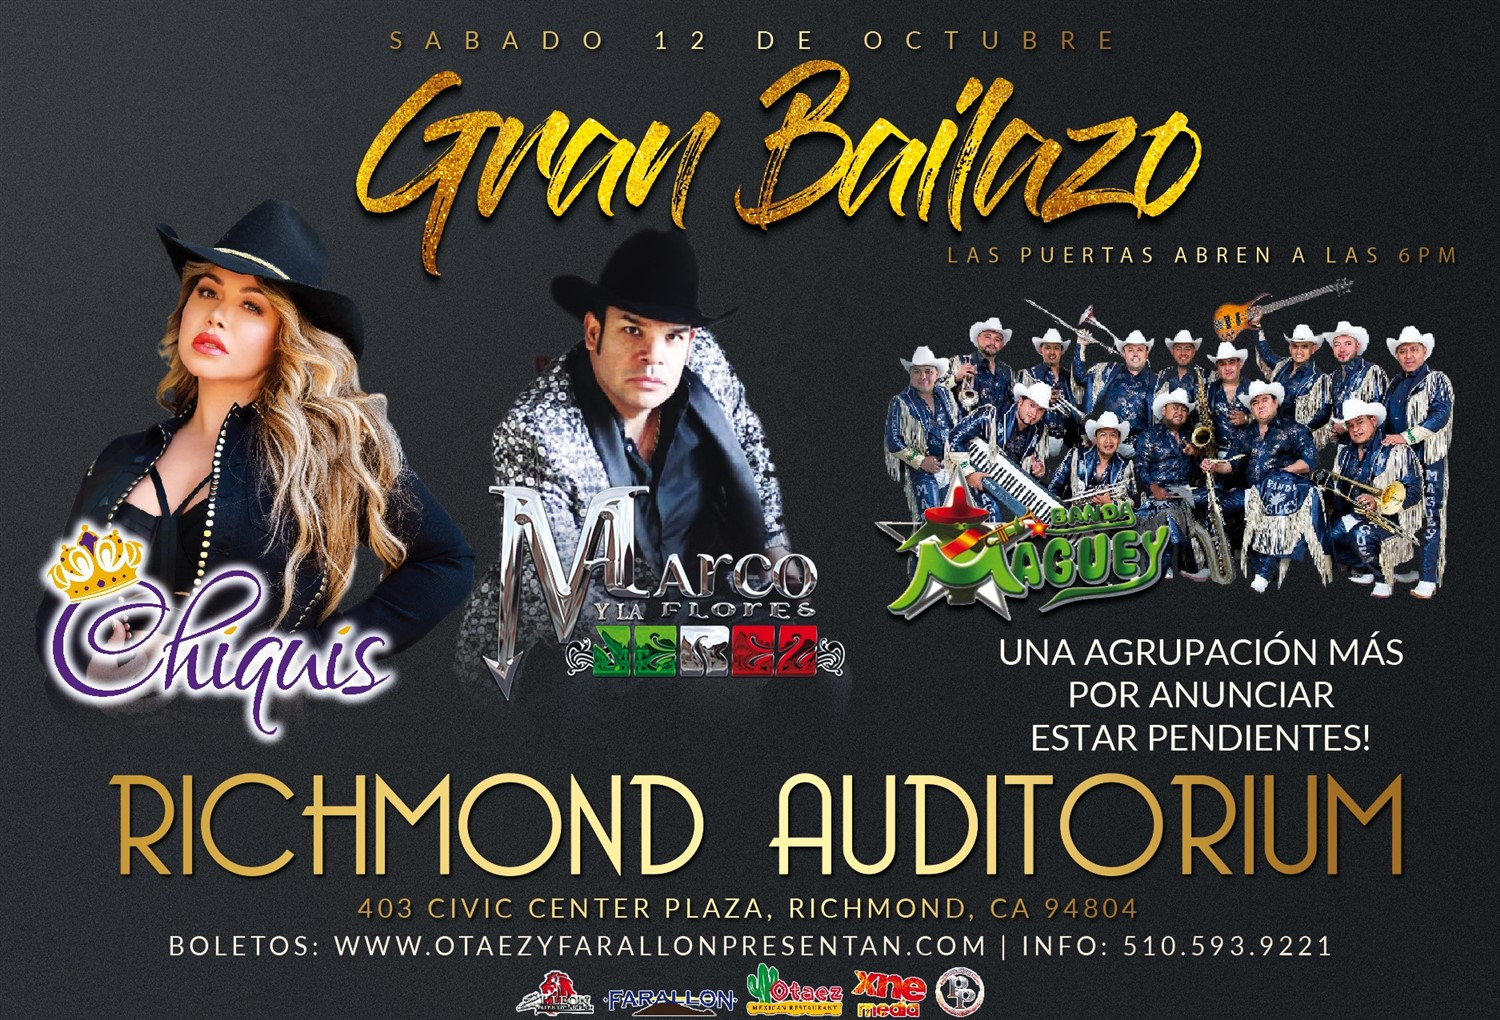 GRAN BAILAZO | Sábado 12 De Octubre Richmond Memorial Auditorium on Oct 12, 18:30@RICHMOND MEMORIAL AUDITORIUM - Buy tickets and Get information on otaezyfarallonpresentan otaezyfarallonpresentan